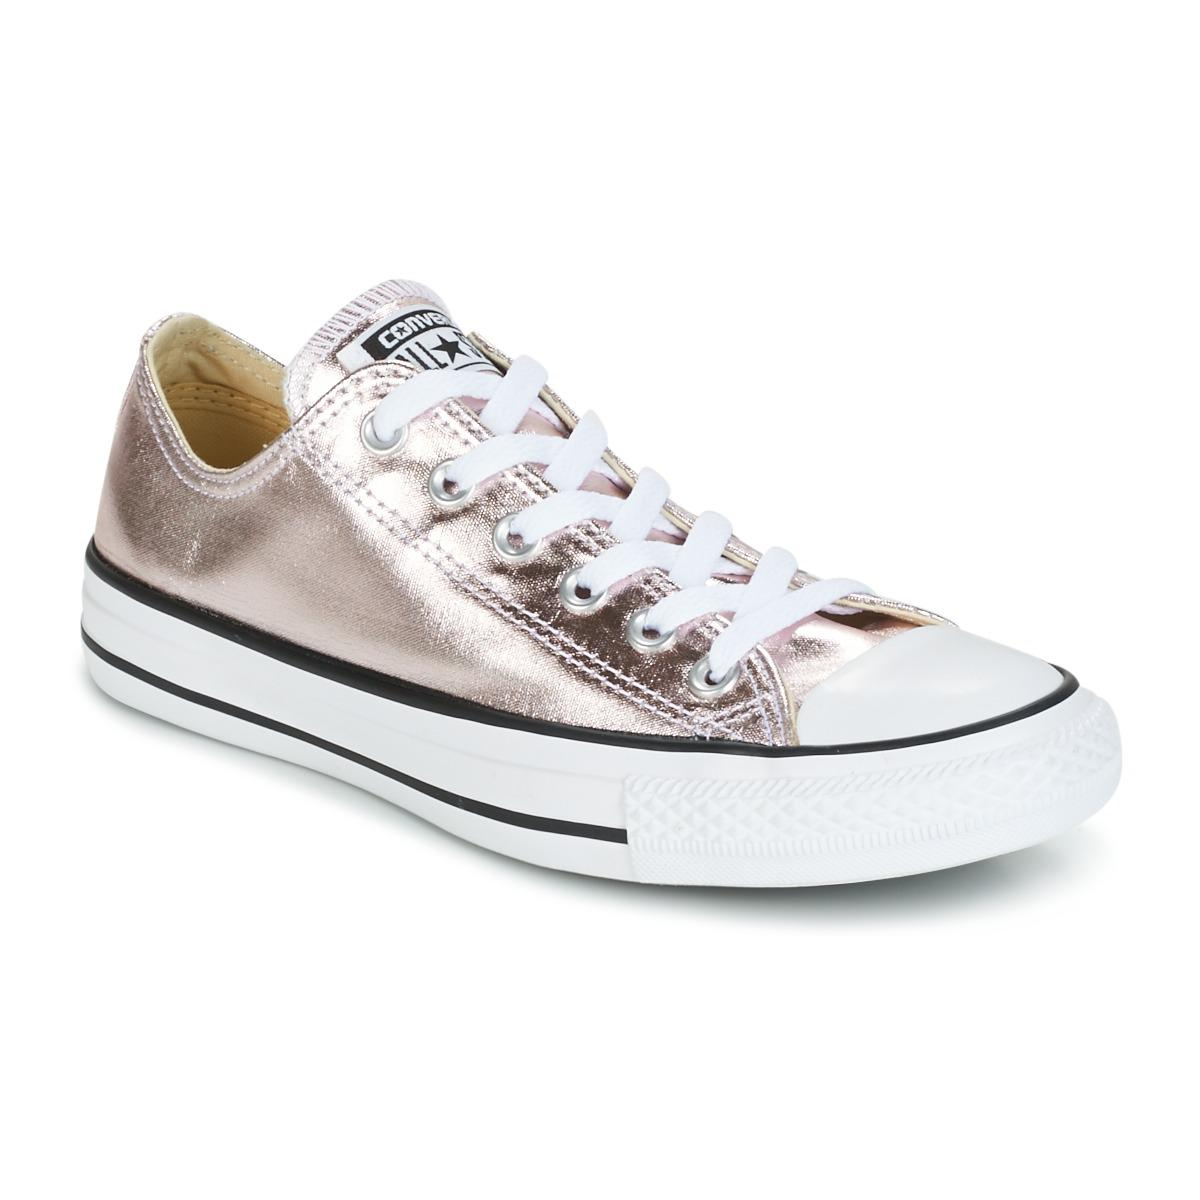 b9c21d1ec589af Gallery. Previously sold at  rubbersole.co.uk · Women s Converse Chuck  Taylor ...